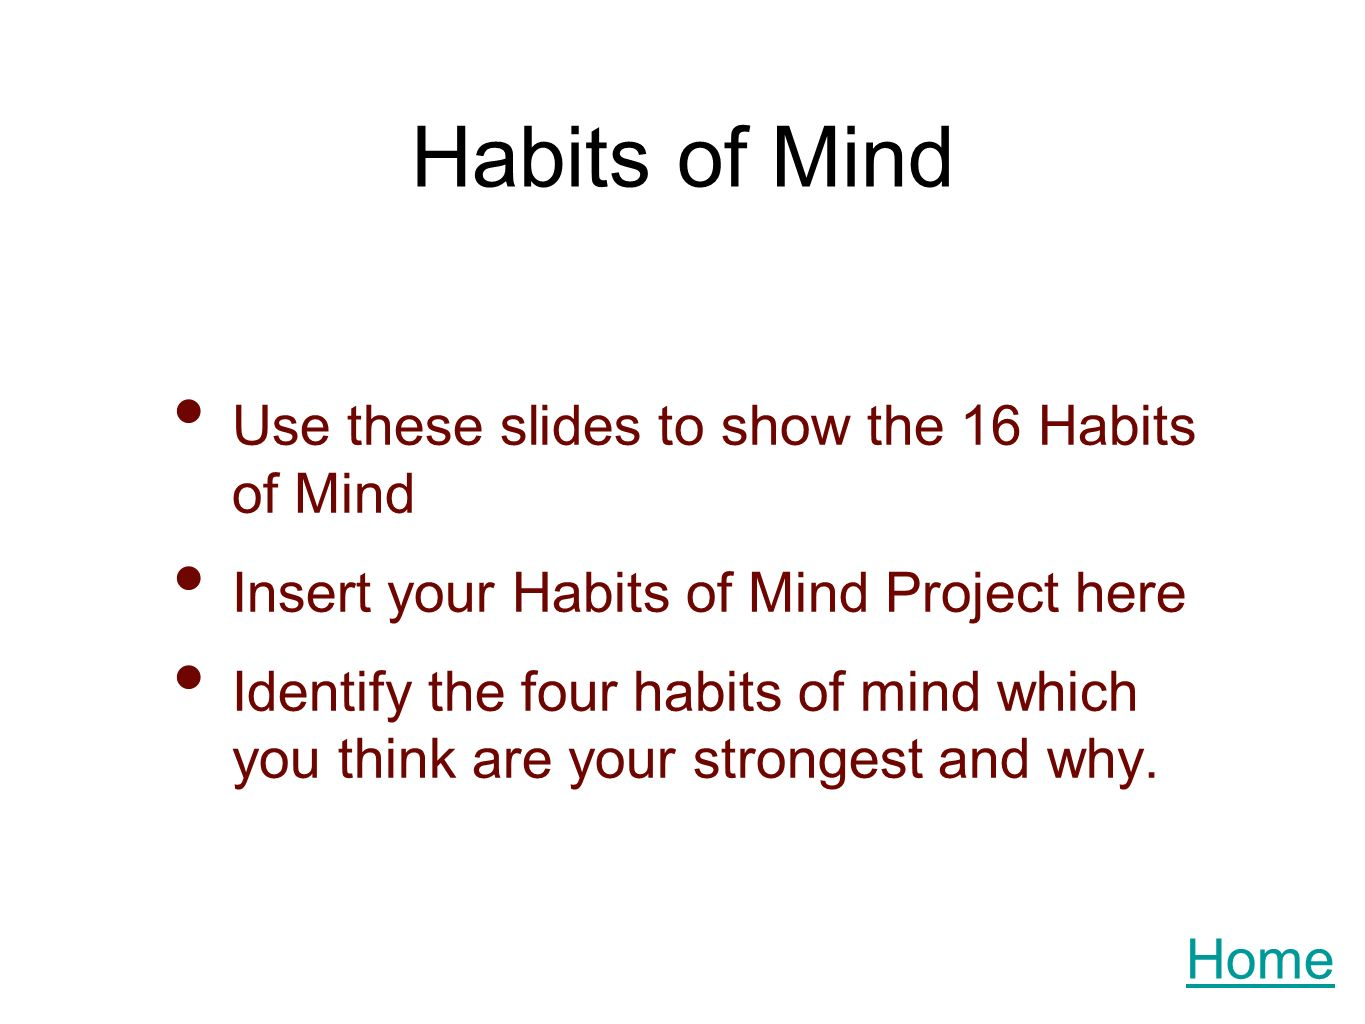 Habits of Mind Use these slides to show the 16 Habits of Mind Insert your Habits of Mind Project here Identify the four habits of mind which you think are your strongest and why.